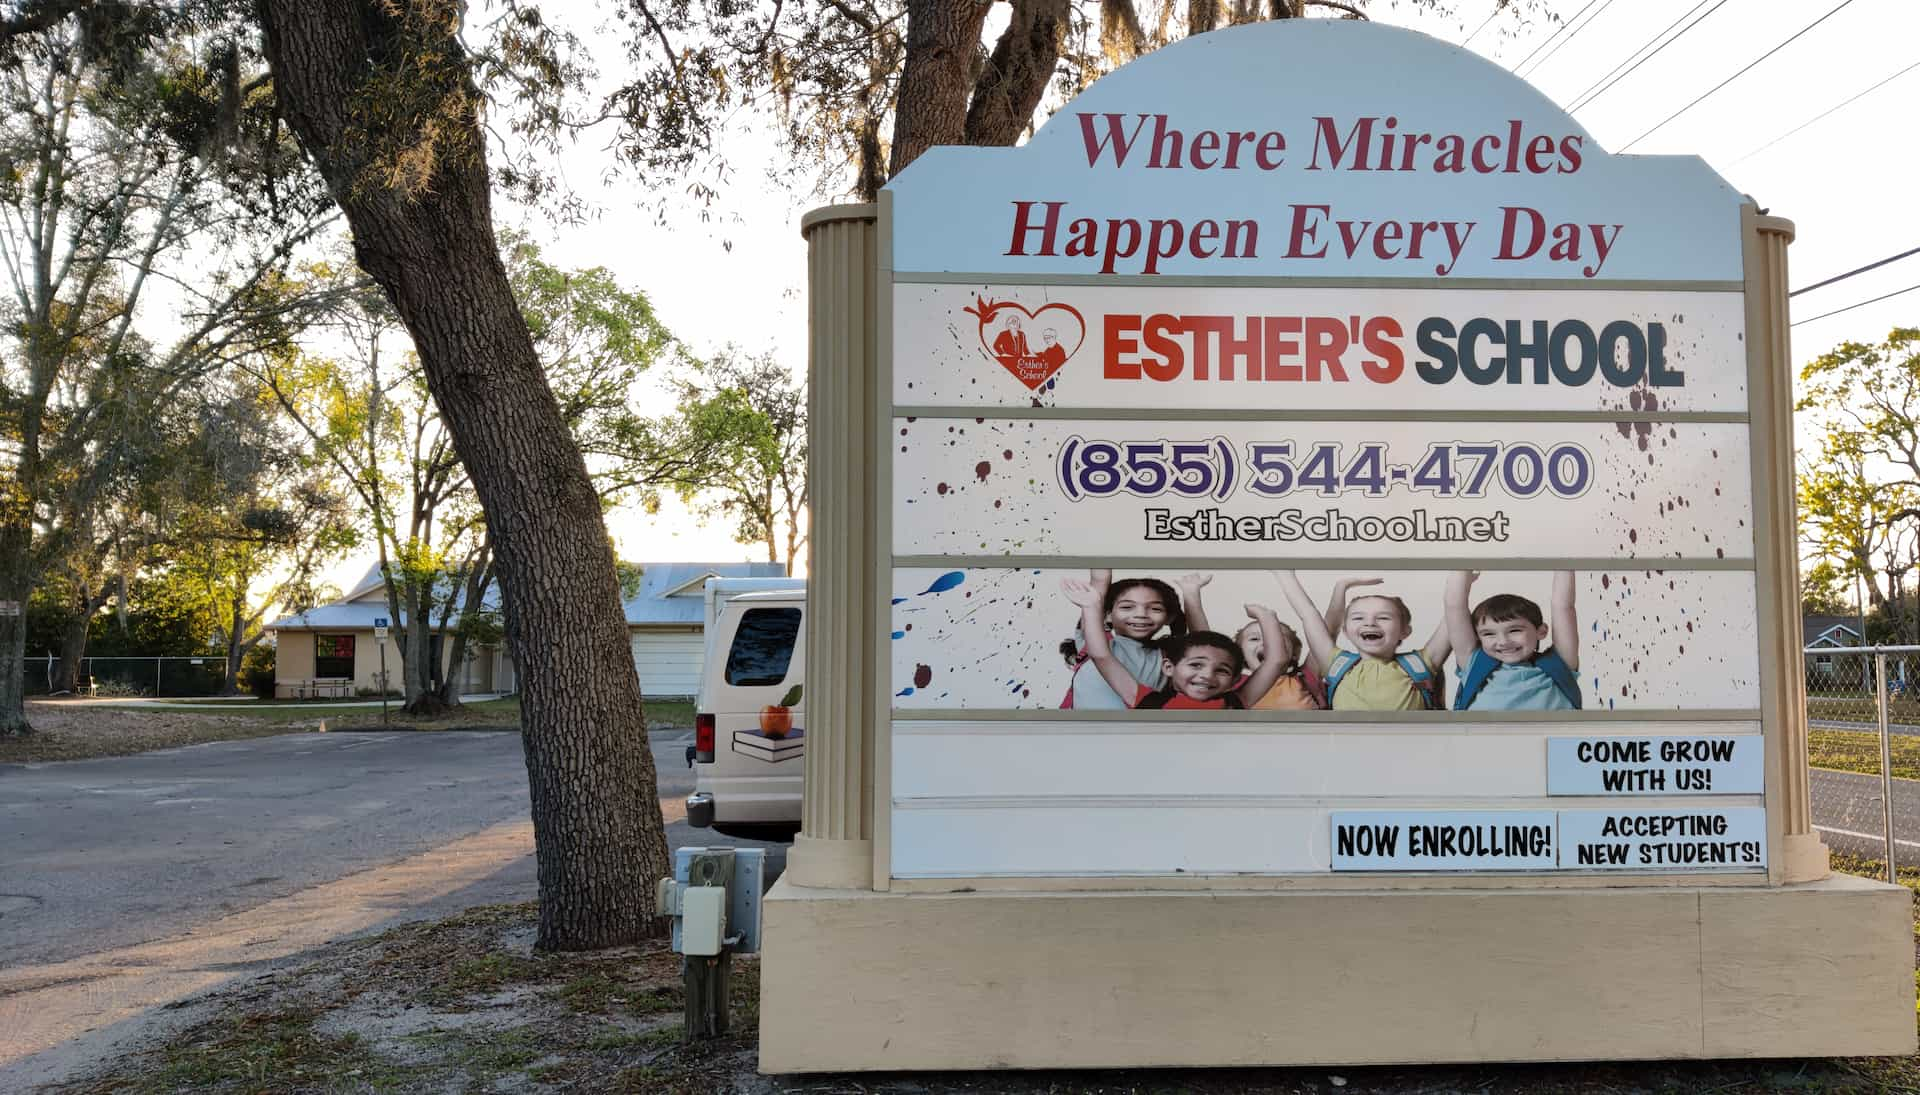 Esther's School - Spring Hill West Central and North Florida